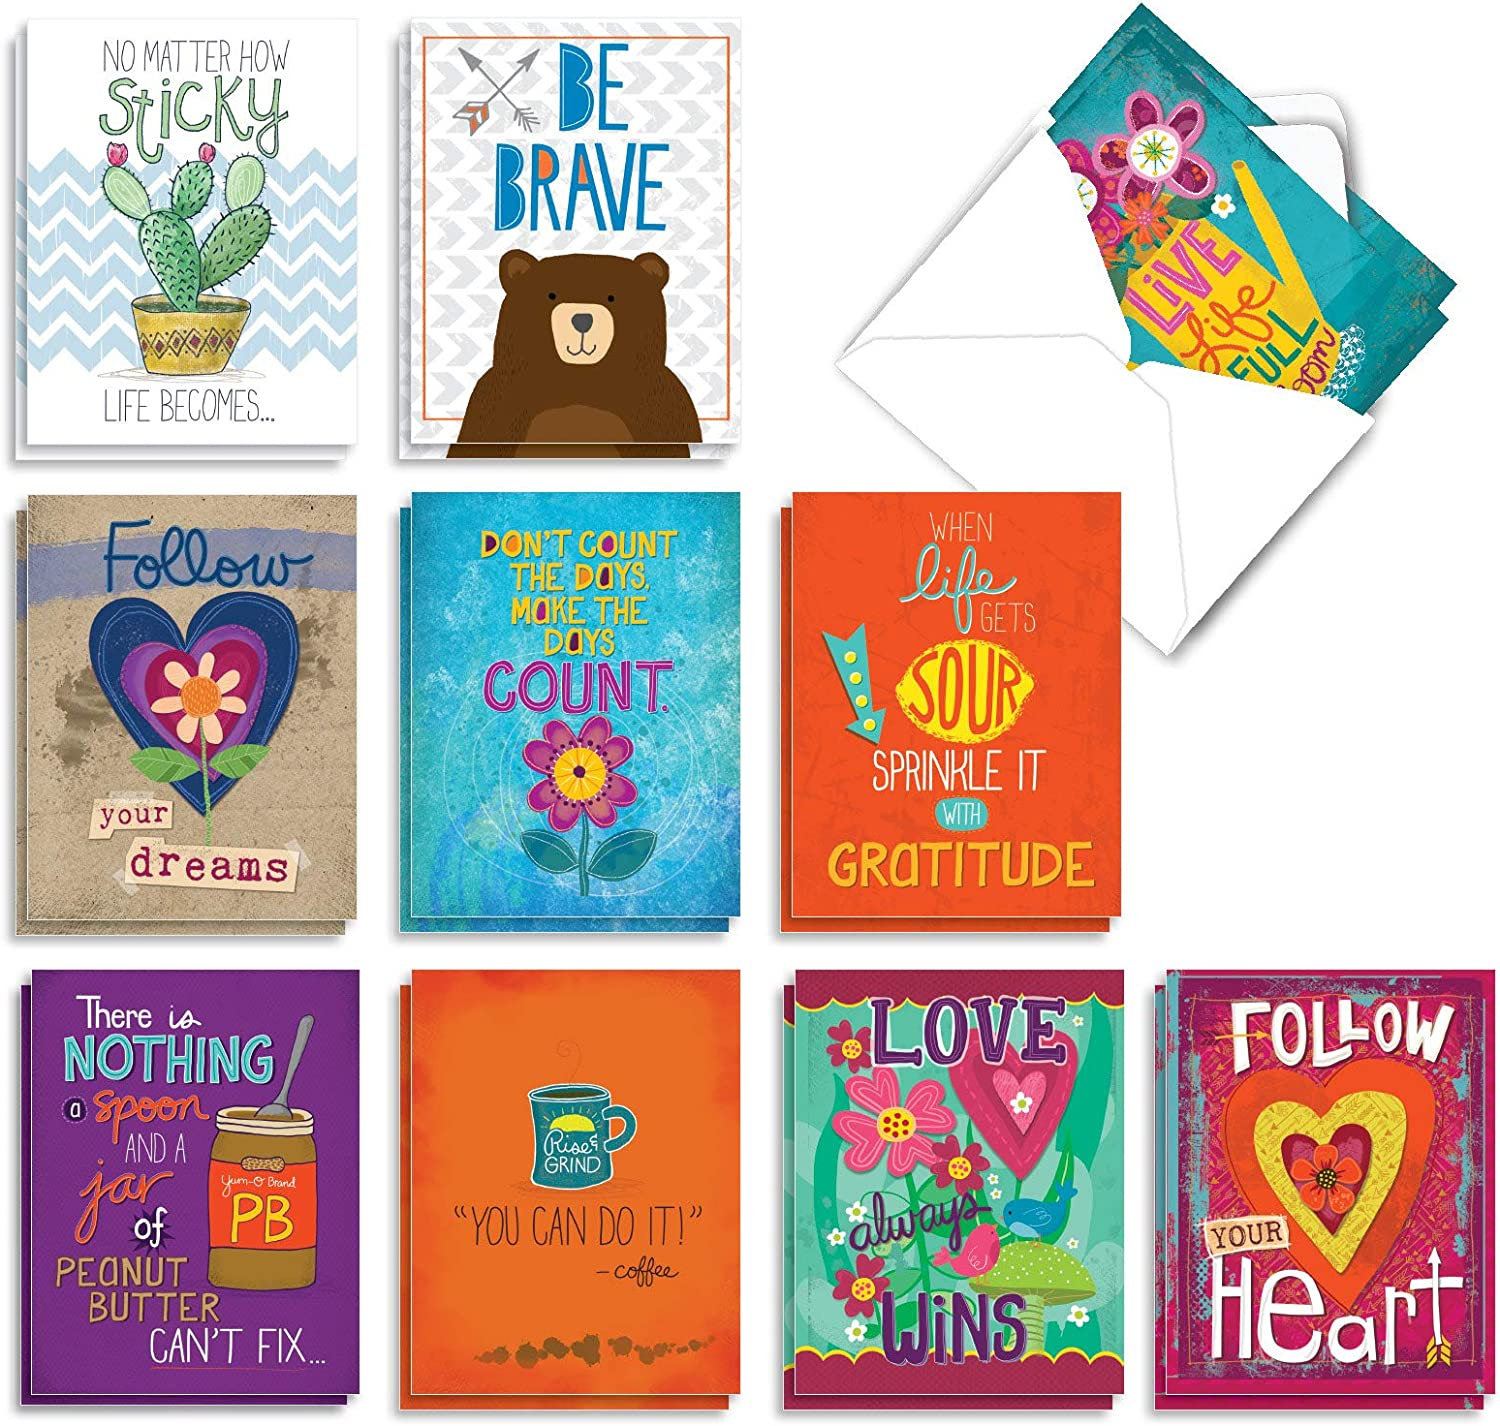 Letter initial N notecards with inspirational quote 5x3.5 6 cards with matching envelopes